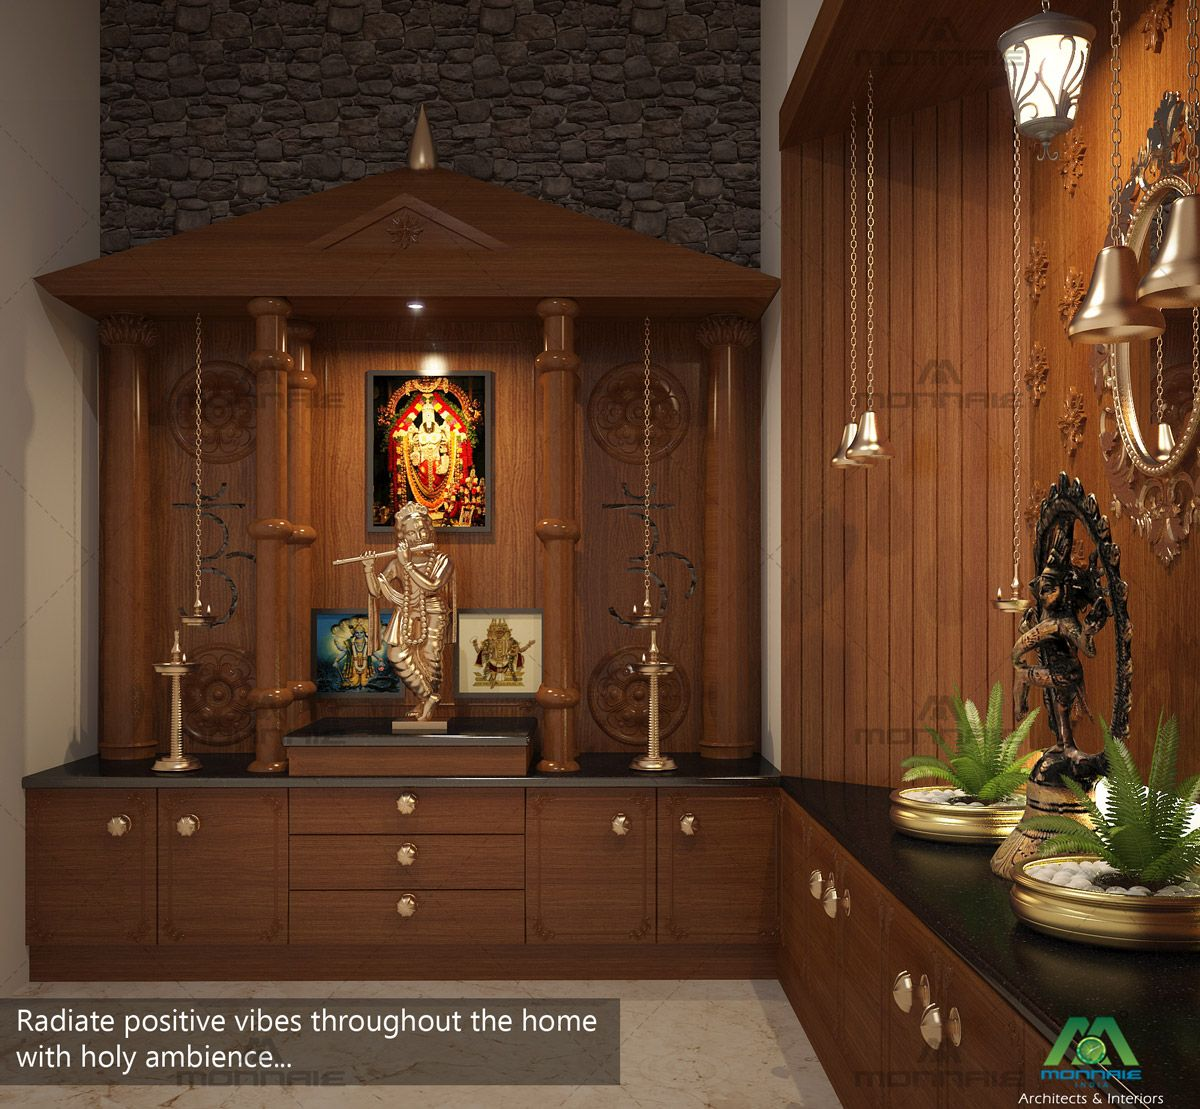 Interior Design For Kitchen In Kerala: Radiate Positive Vibes Throughout The Home With Holy Ambience... Visit : Www.monnaie.in Or Www